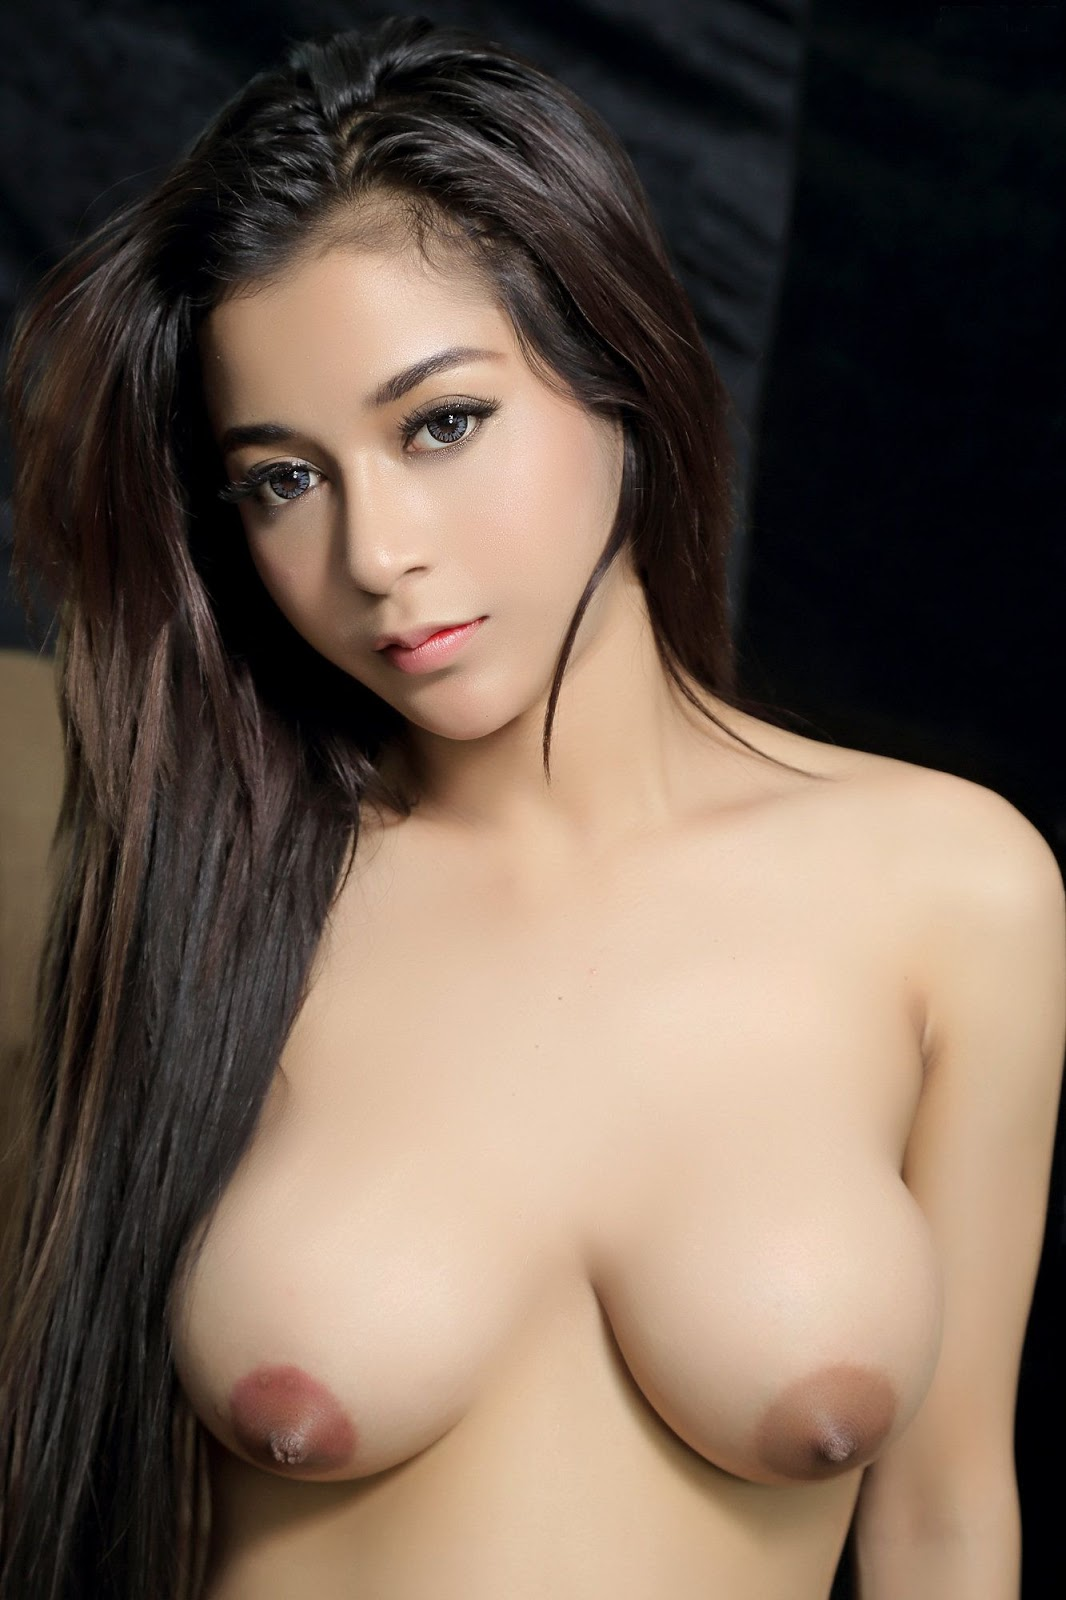 Indonesia naked model tata lovista